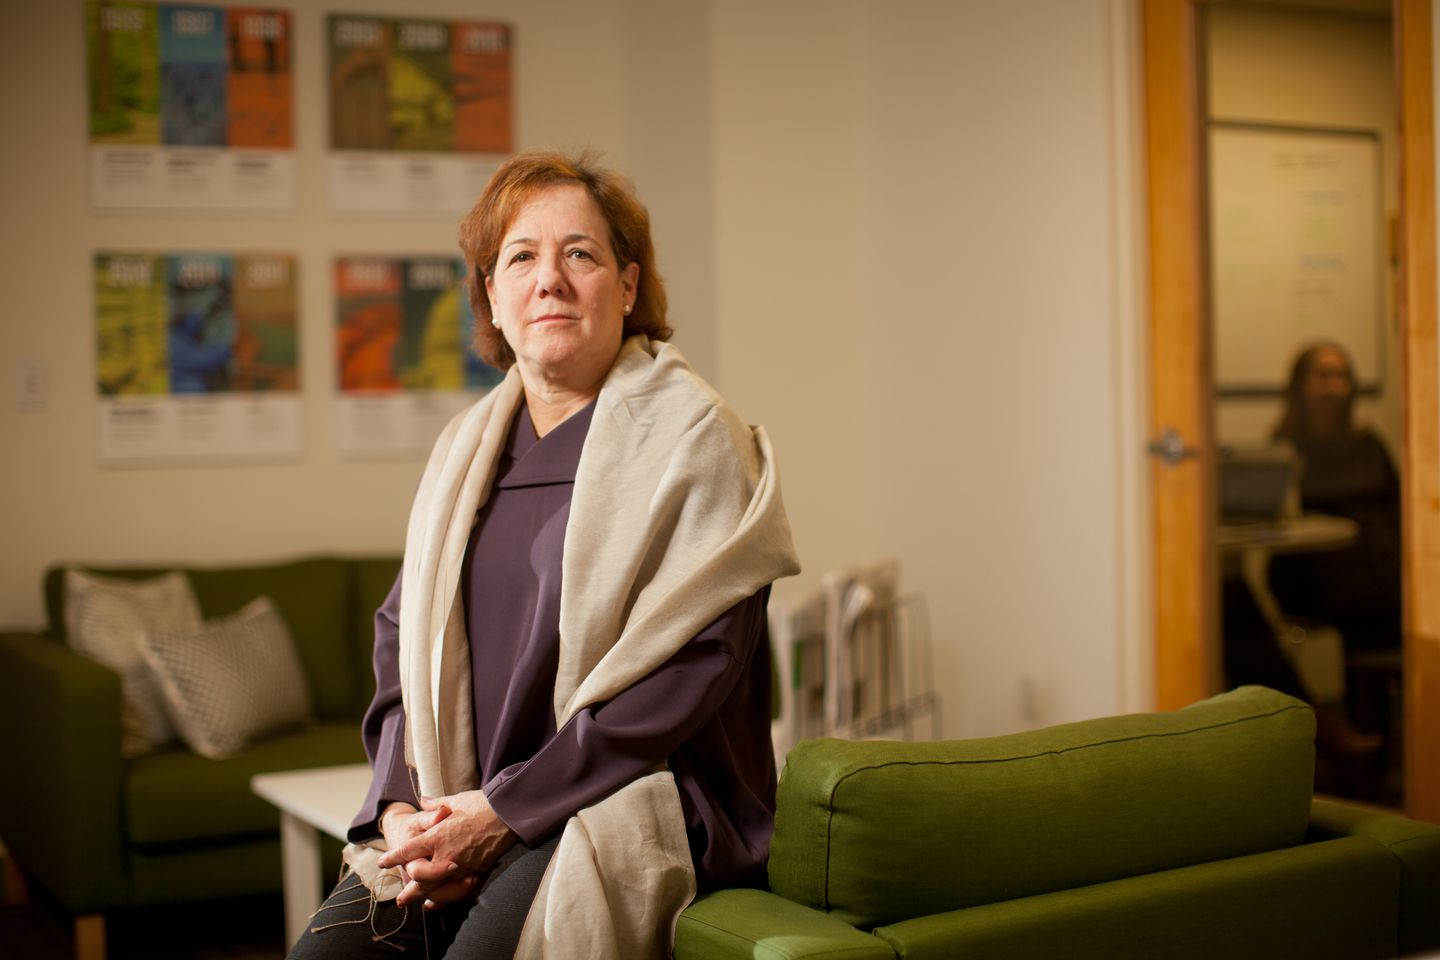 Ceres chief executive Mindy Lubber was cited for the work she did to catalyze business support for the carbon emissions accord known as the Paris Agreement.